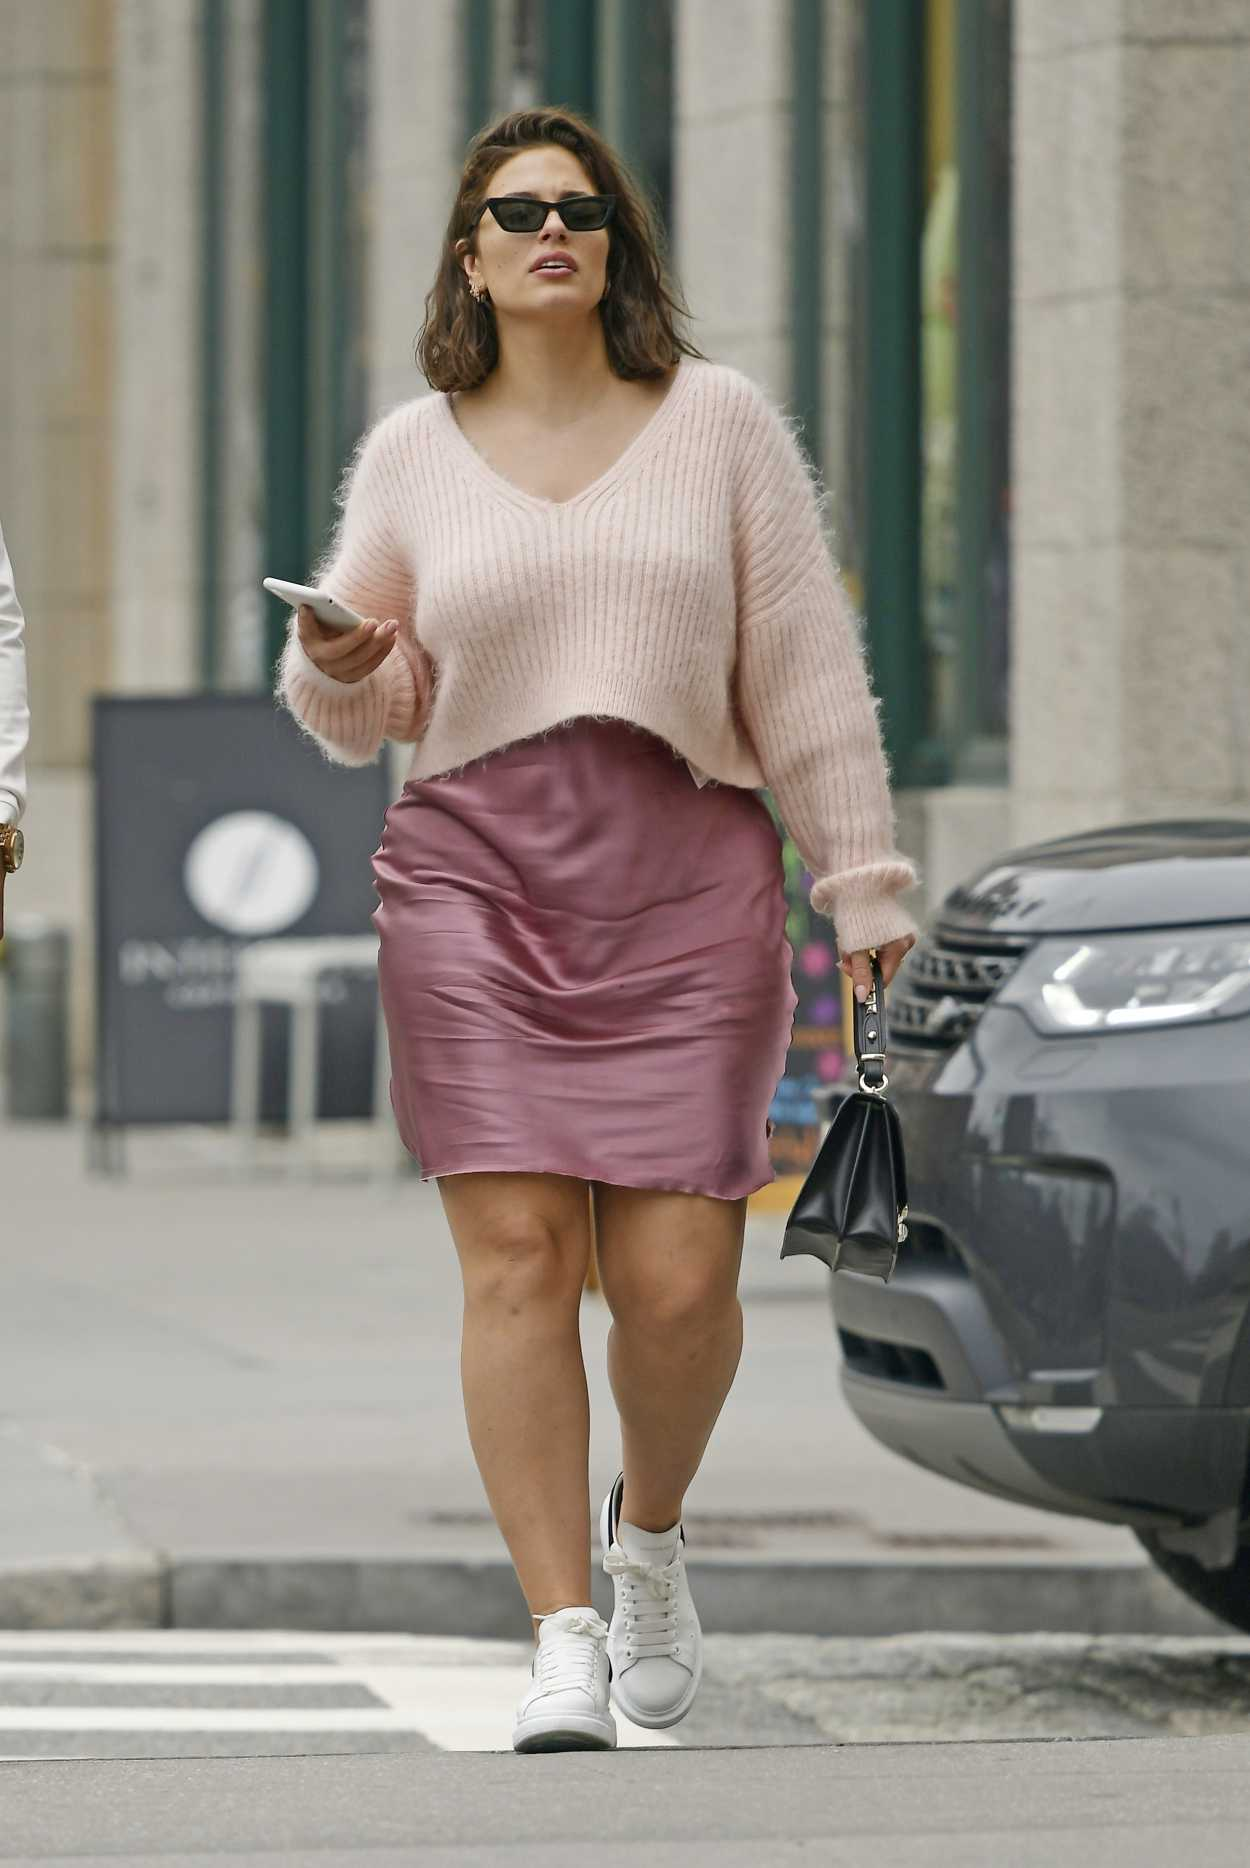 Ashley Graham Was Seen Out With Justin Ervin In Tribeca Nyc 04 14